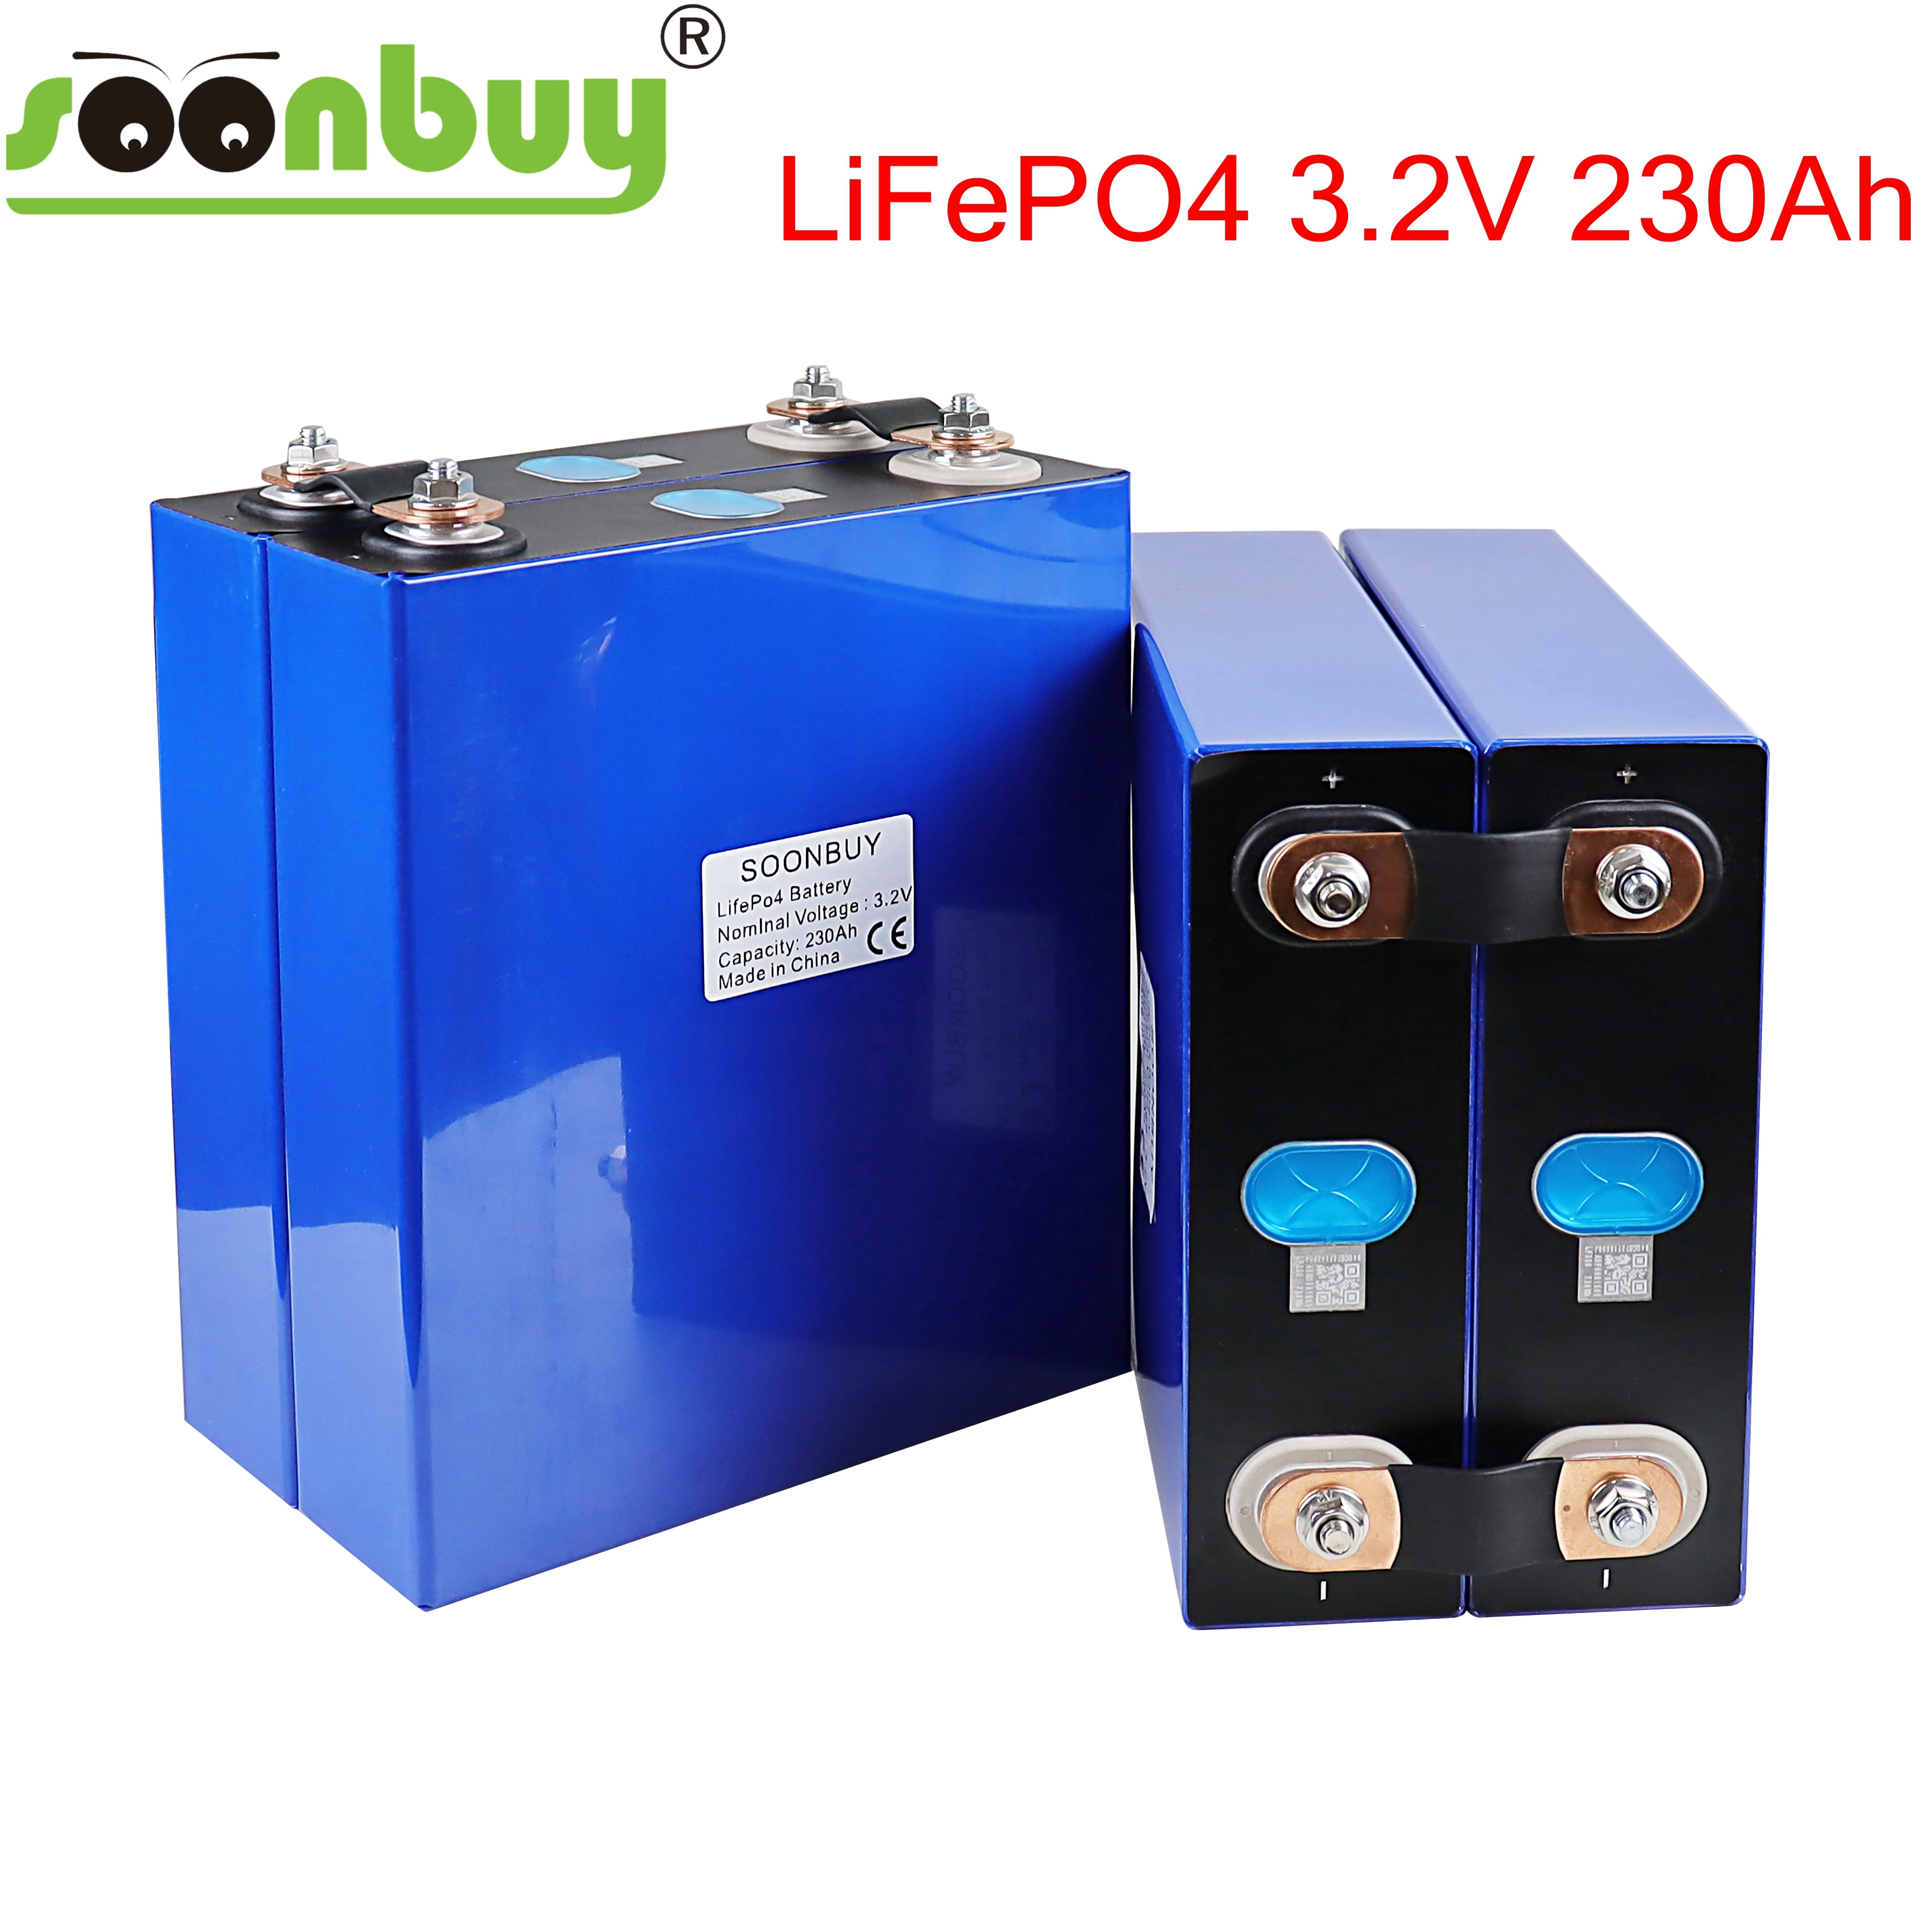 New 3.2v 230ah lifepo4 battery 12v230ah 24v230ah lithium cell phosphate solar iron eu usa russia fast delivery tax free